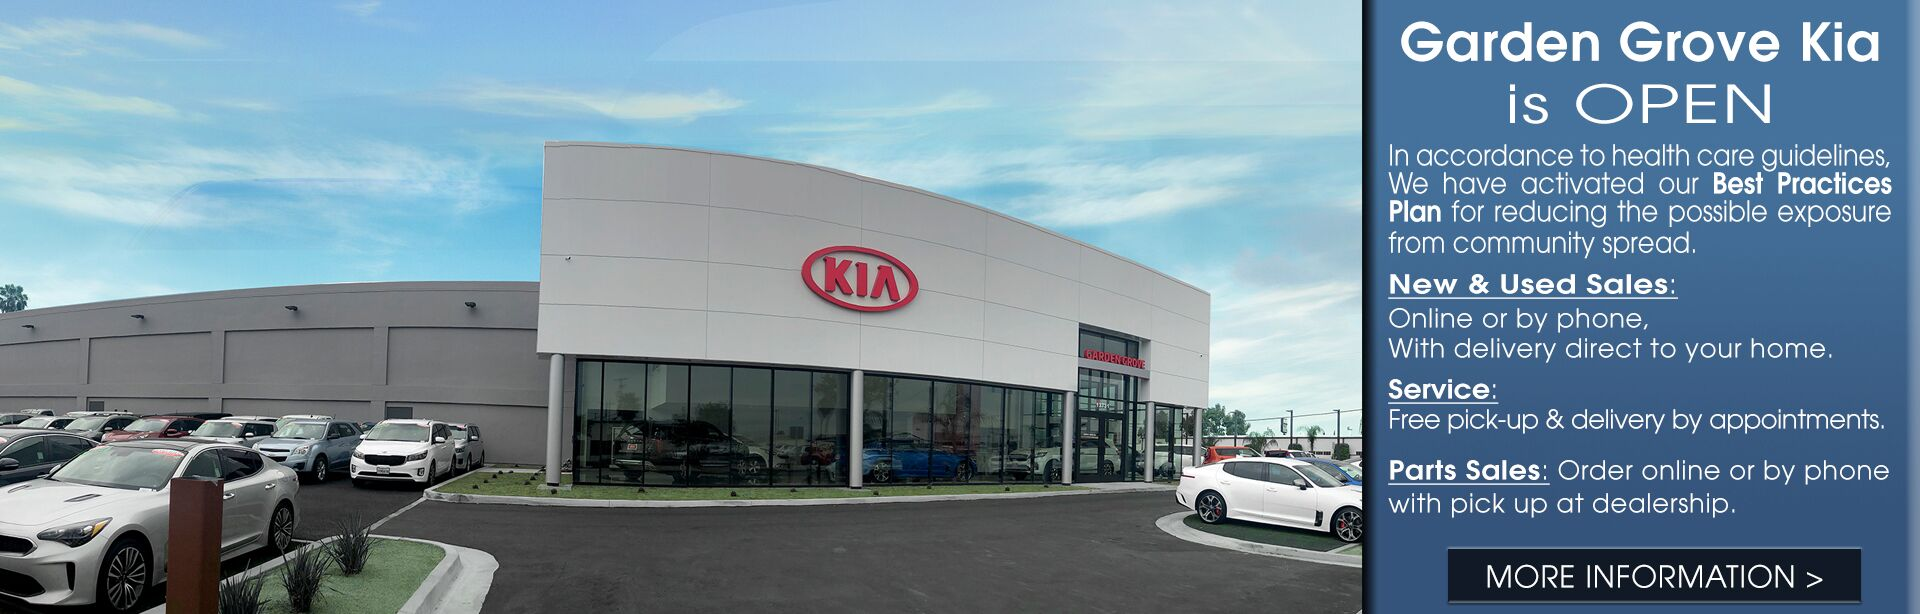 Garden Grove Kia Customer Health and Safety Best Practices Plan